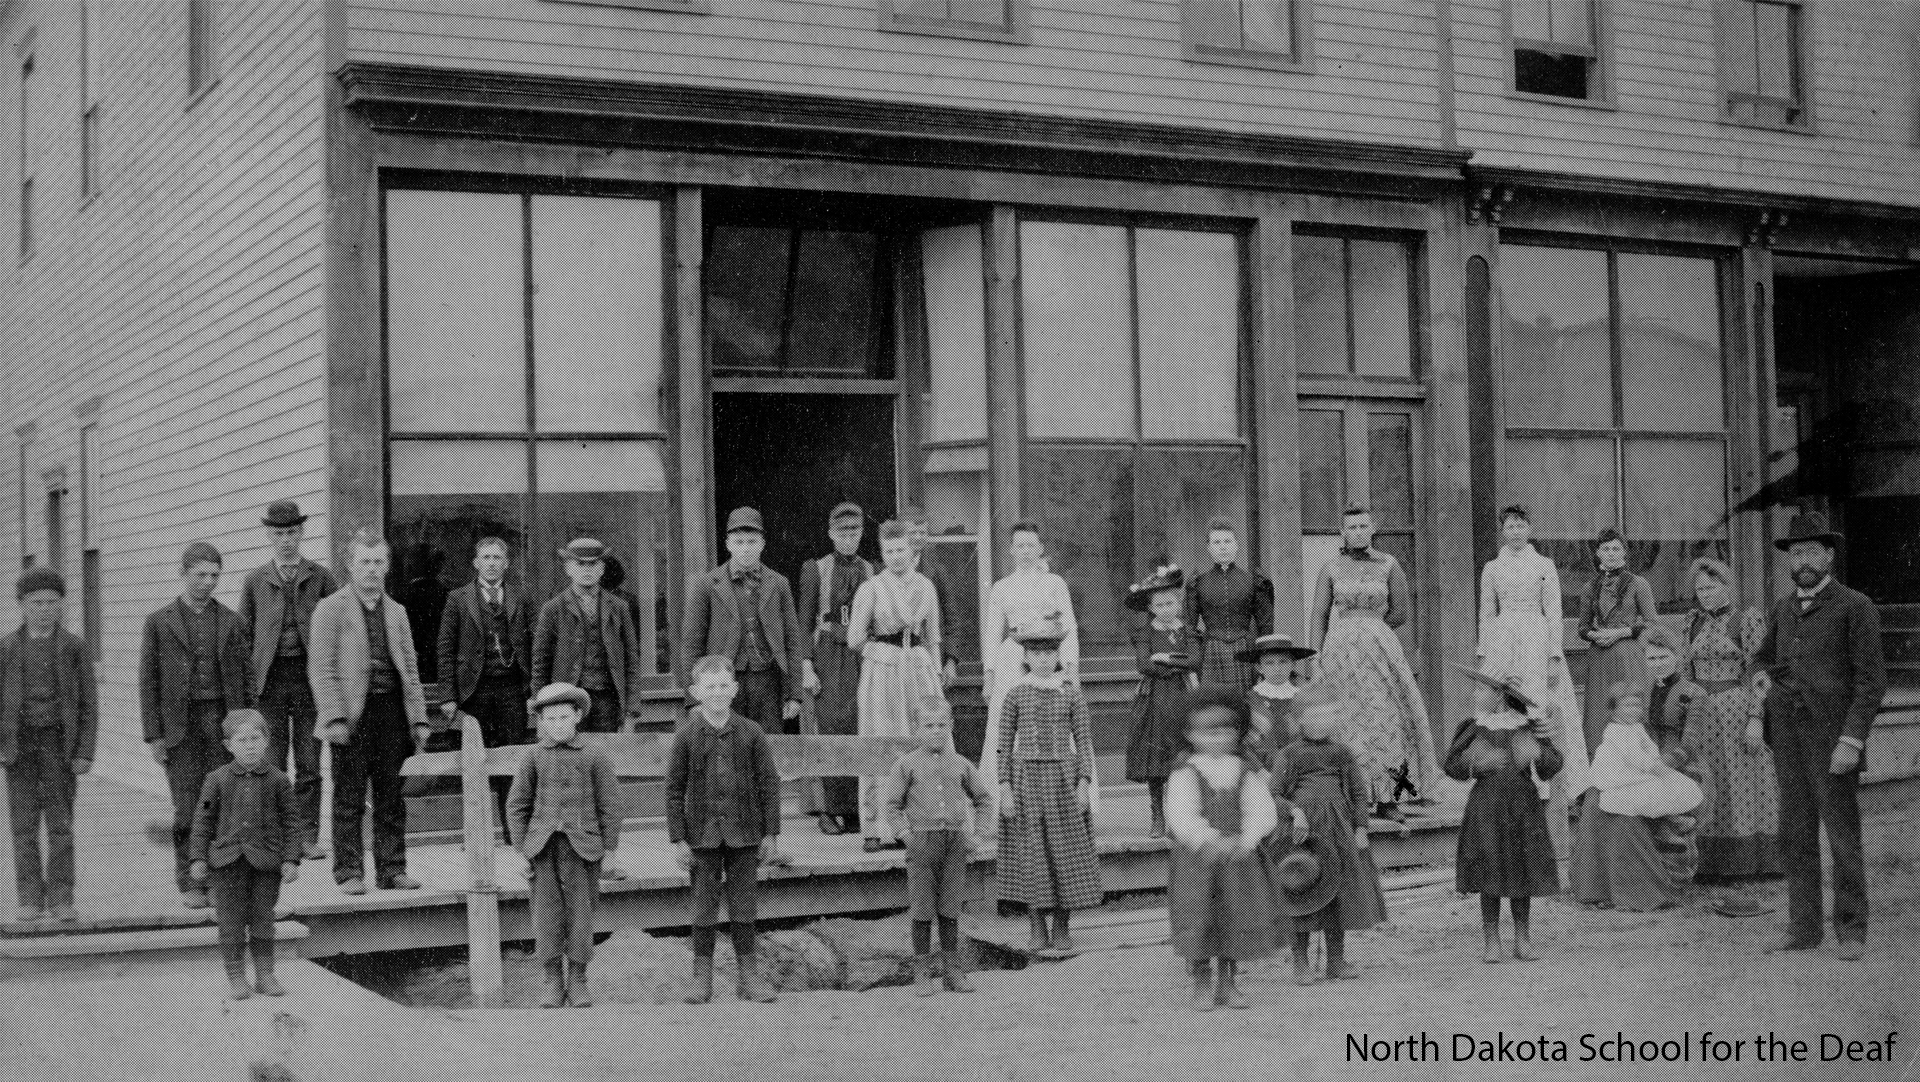 Deaf people standing in front of the North Dakota School for the Deaf